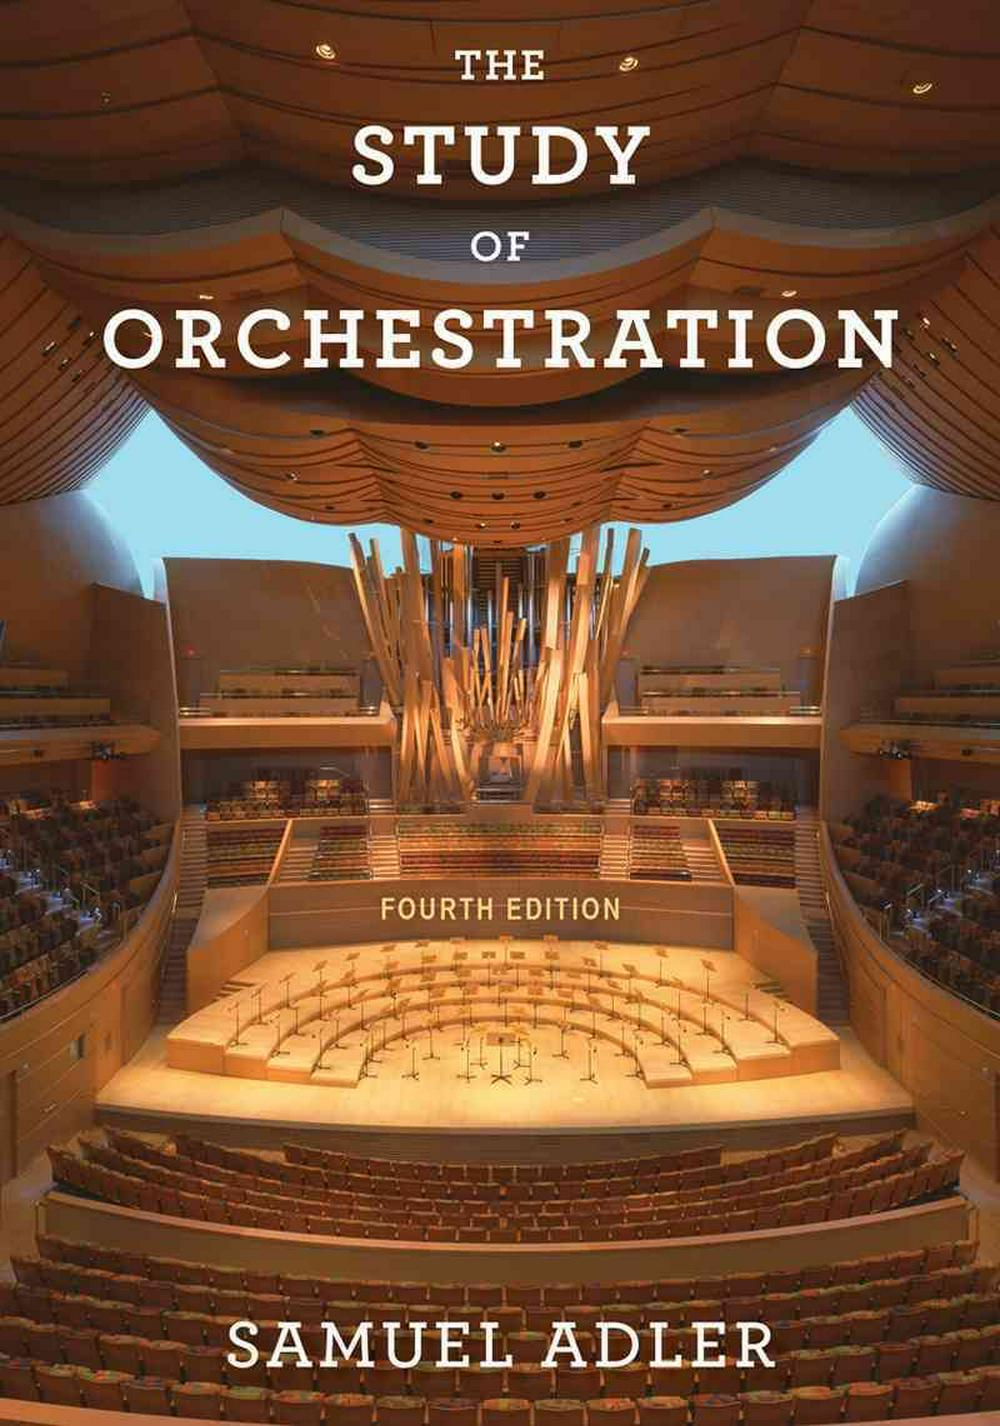 The Study of Orchestration by Samuel Adler, ISBN: 9780393920659